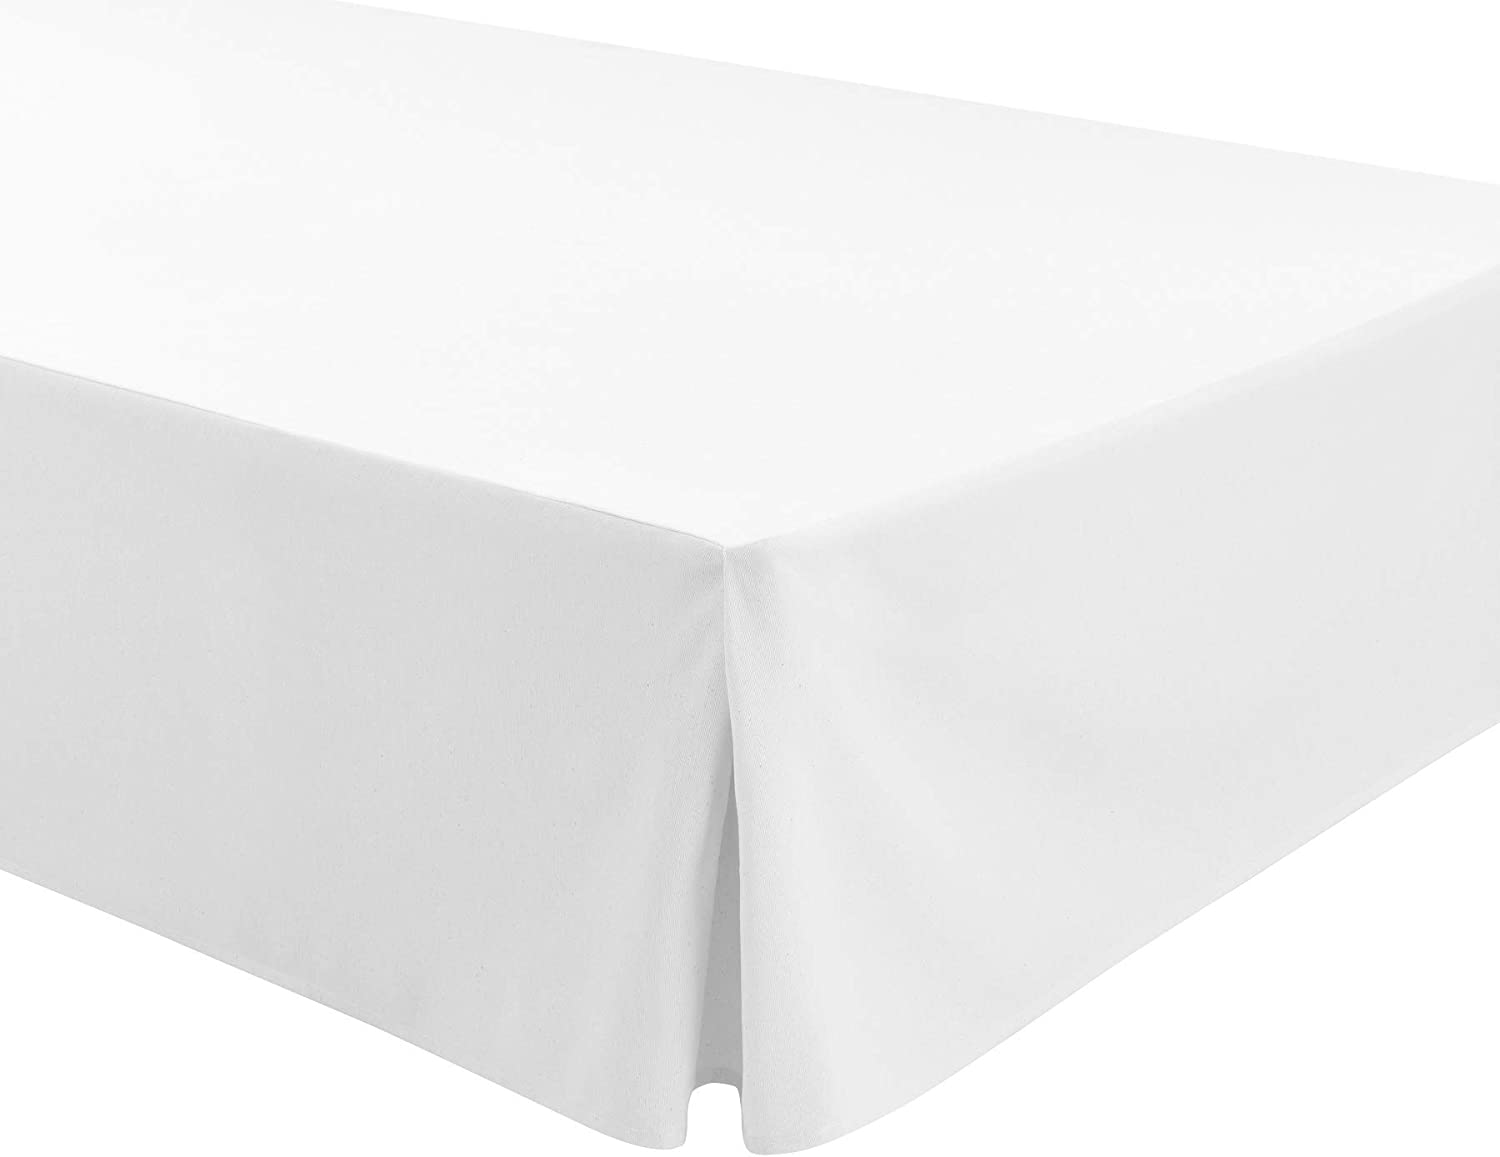 90x190//200cm Base Platform Valance Sheet box Pleated For Somier ATENEA Easycosy Colour White Bed Frill 32cm